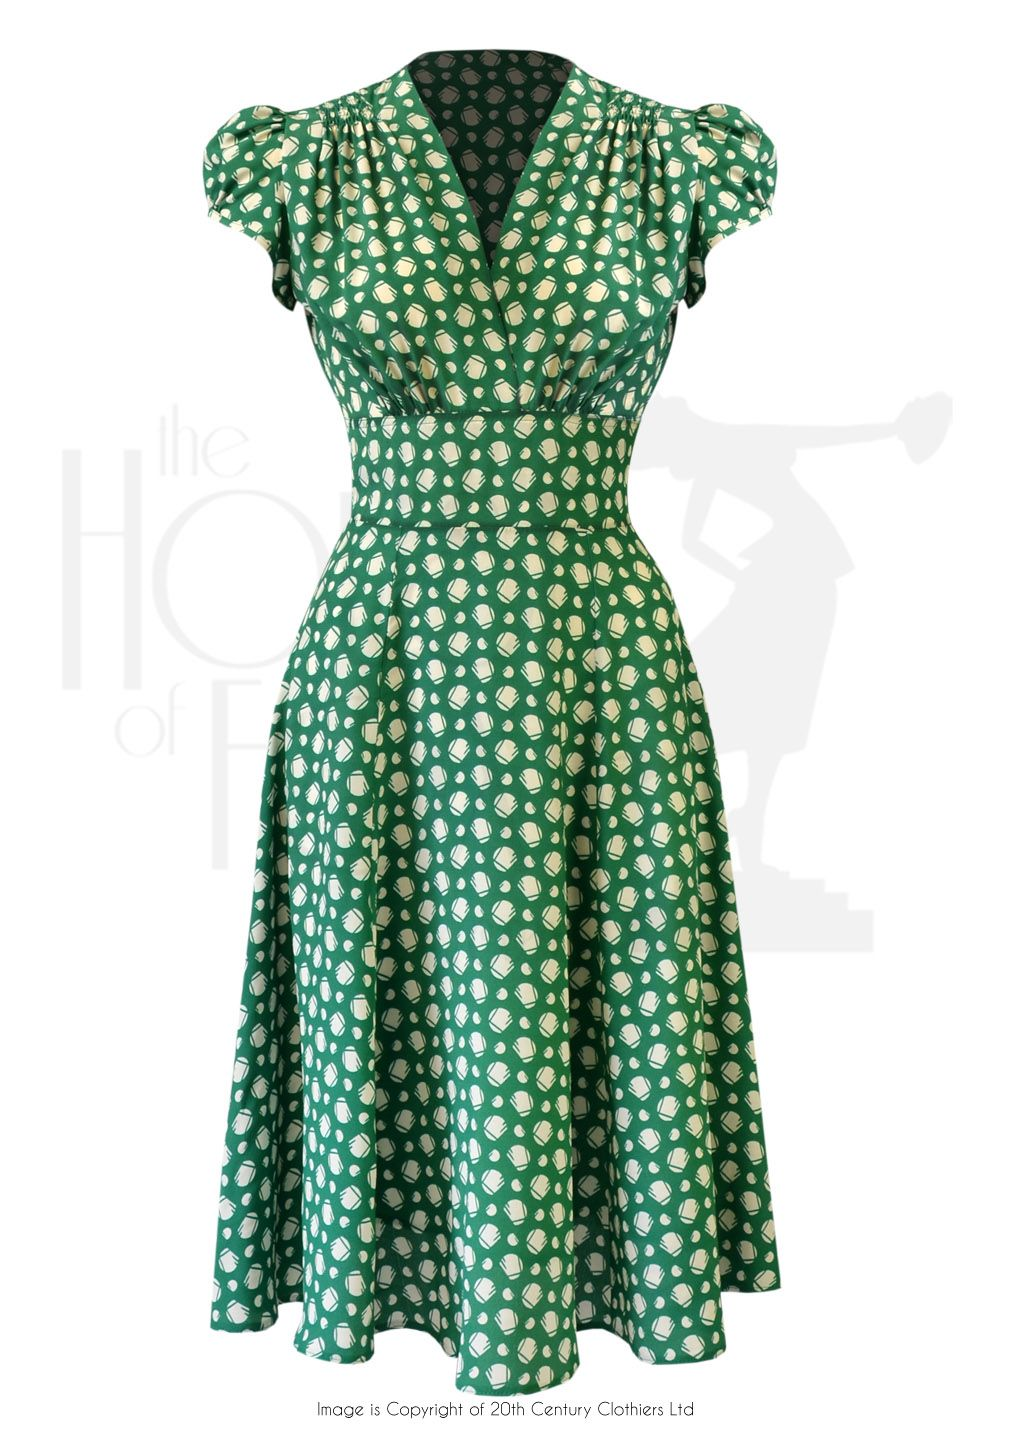 1930s 40s Ava Tea Dress in Emerald Deco Dot  cb66c483c